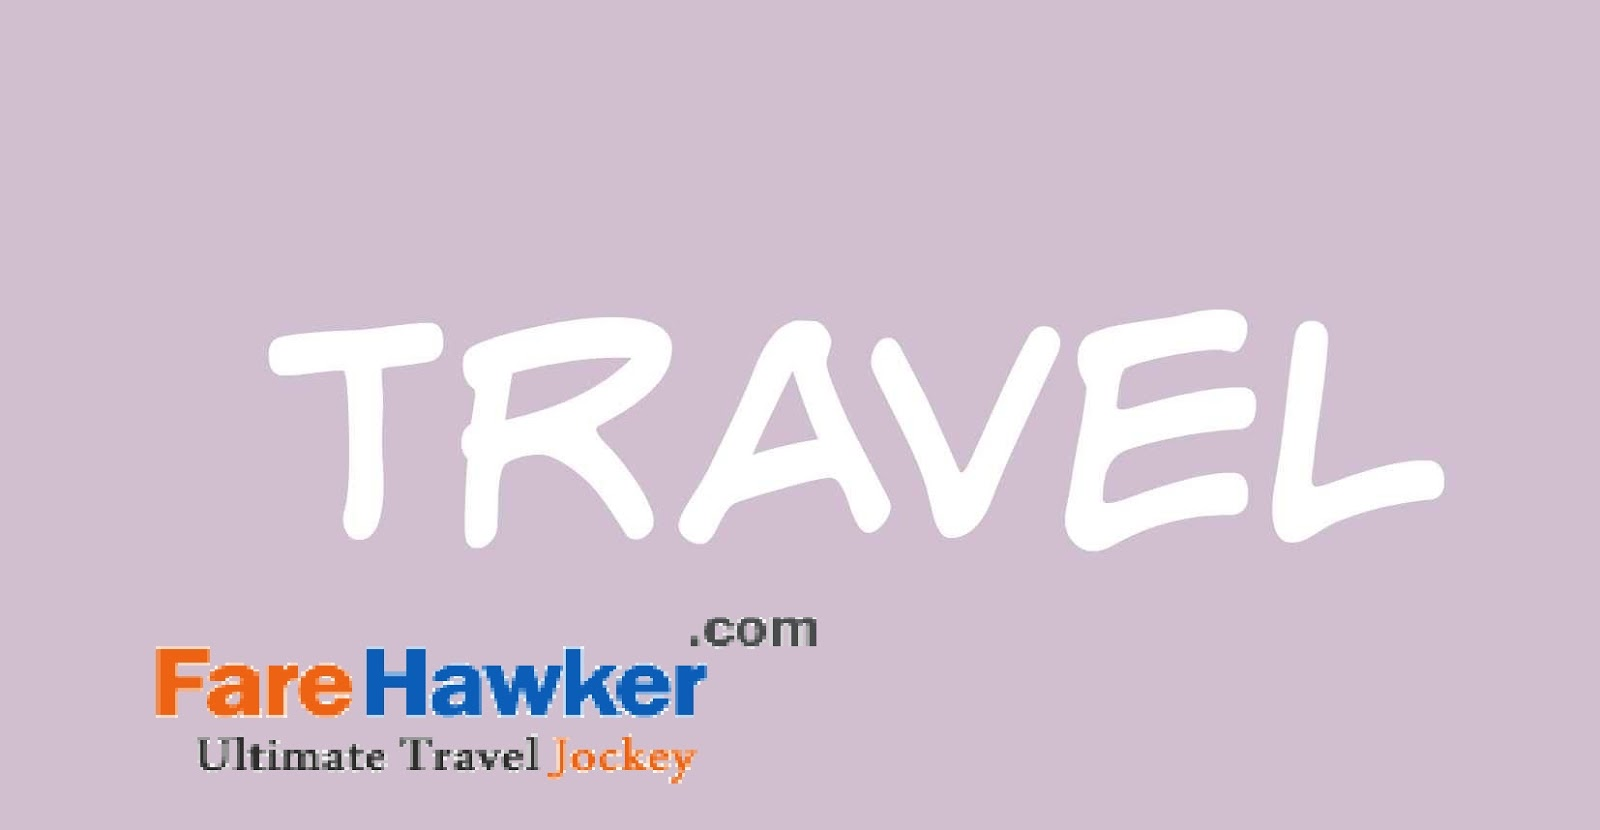 FareHawker Com®: #UltimateTravelJockey: Lowest SpiceJet